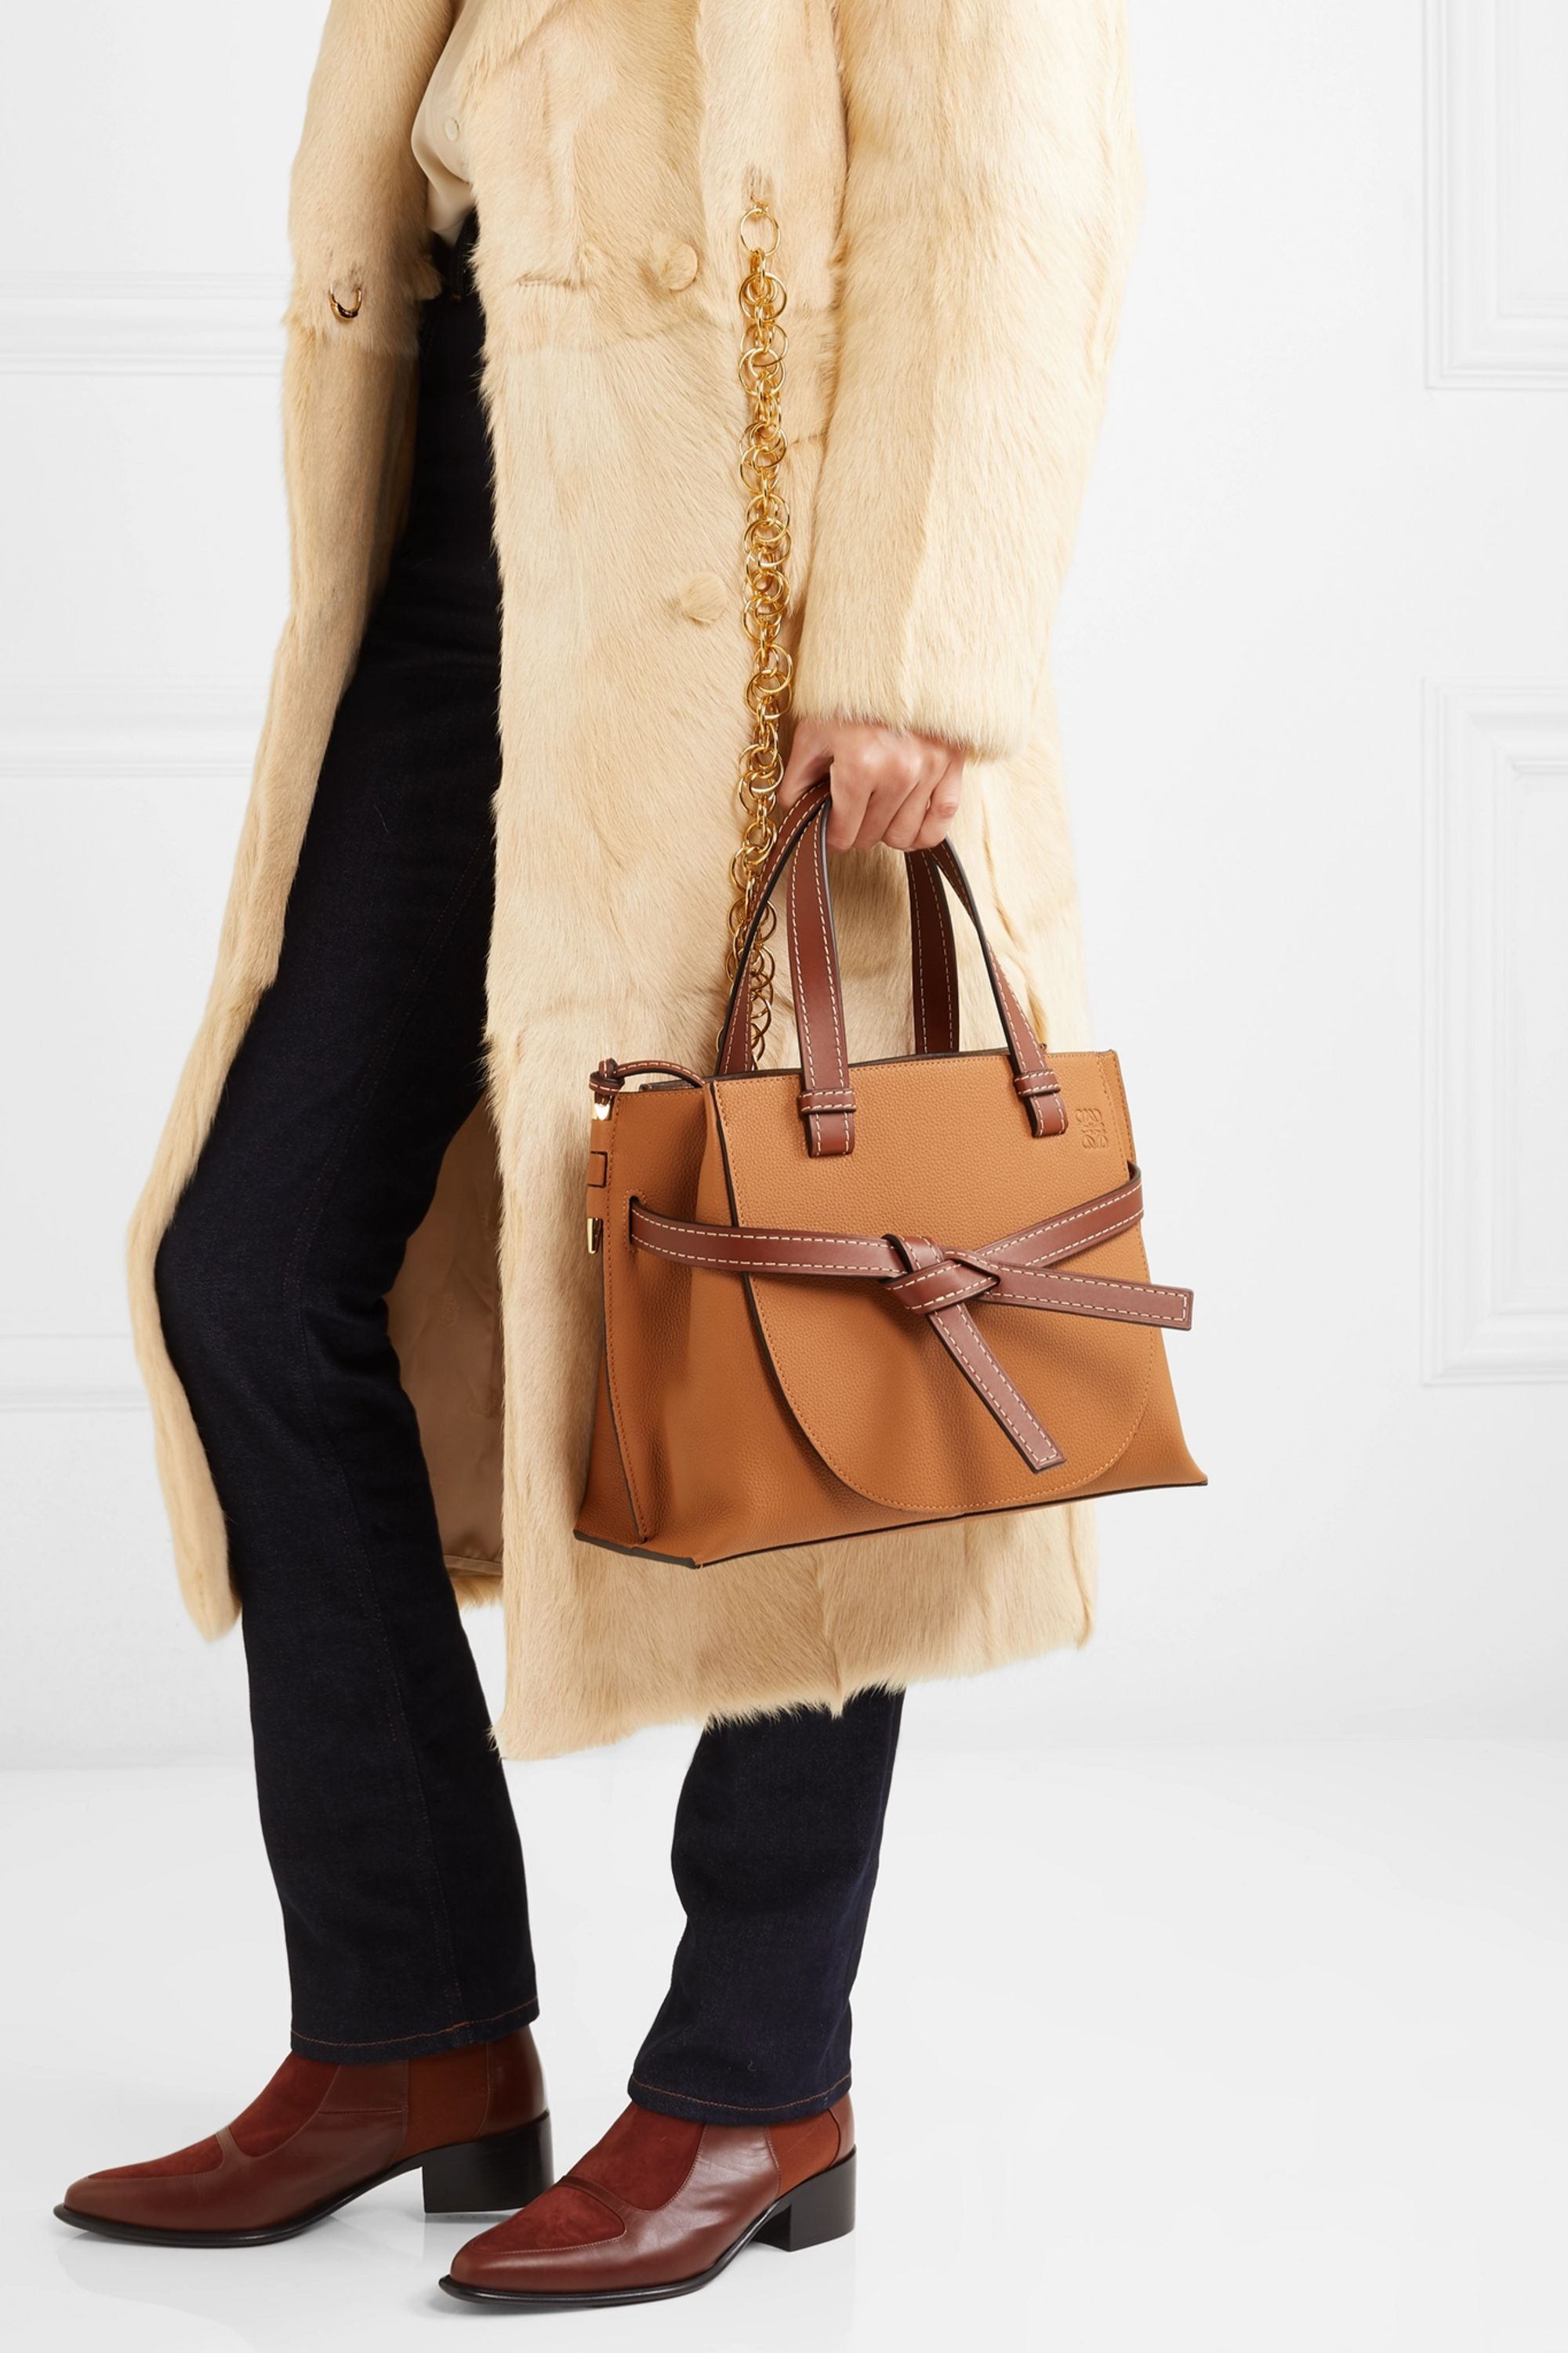 1084204_ou_2000_q80 Best Bags to Buy This Year - Top 20 Designer Bags of 2020